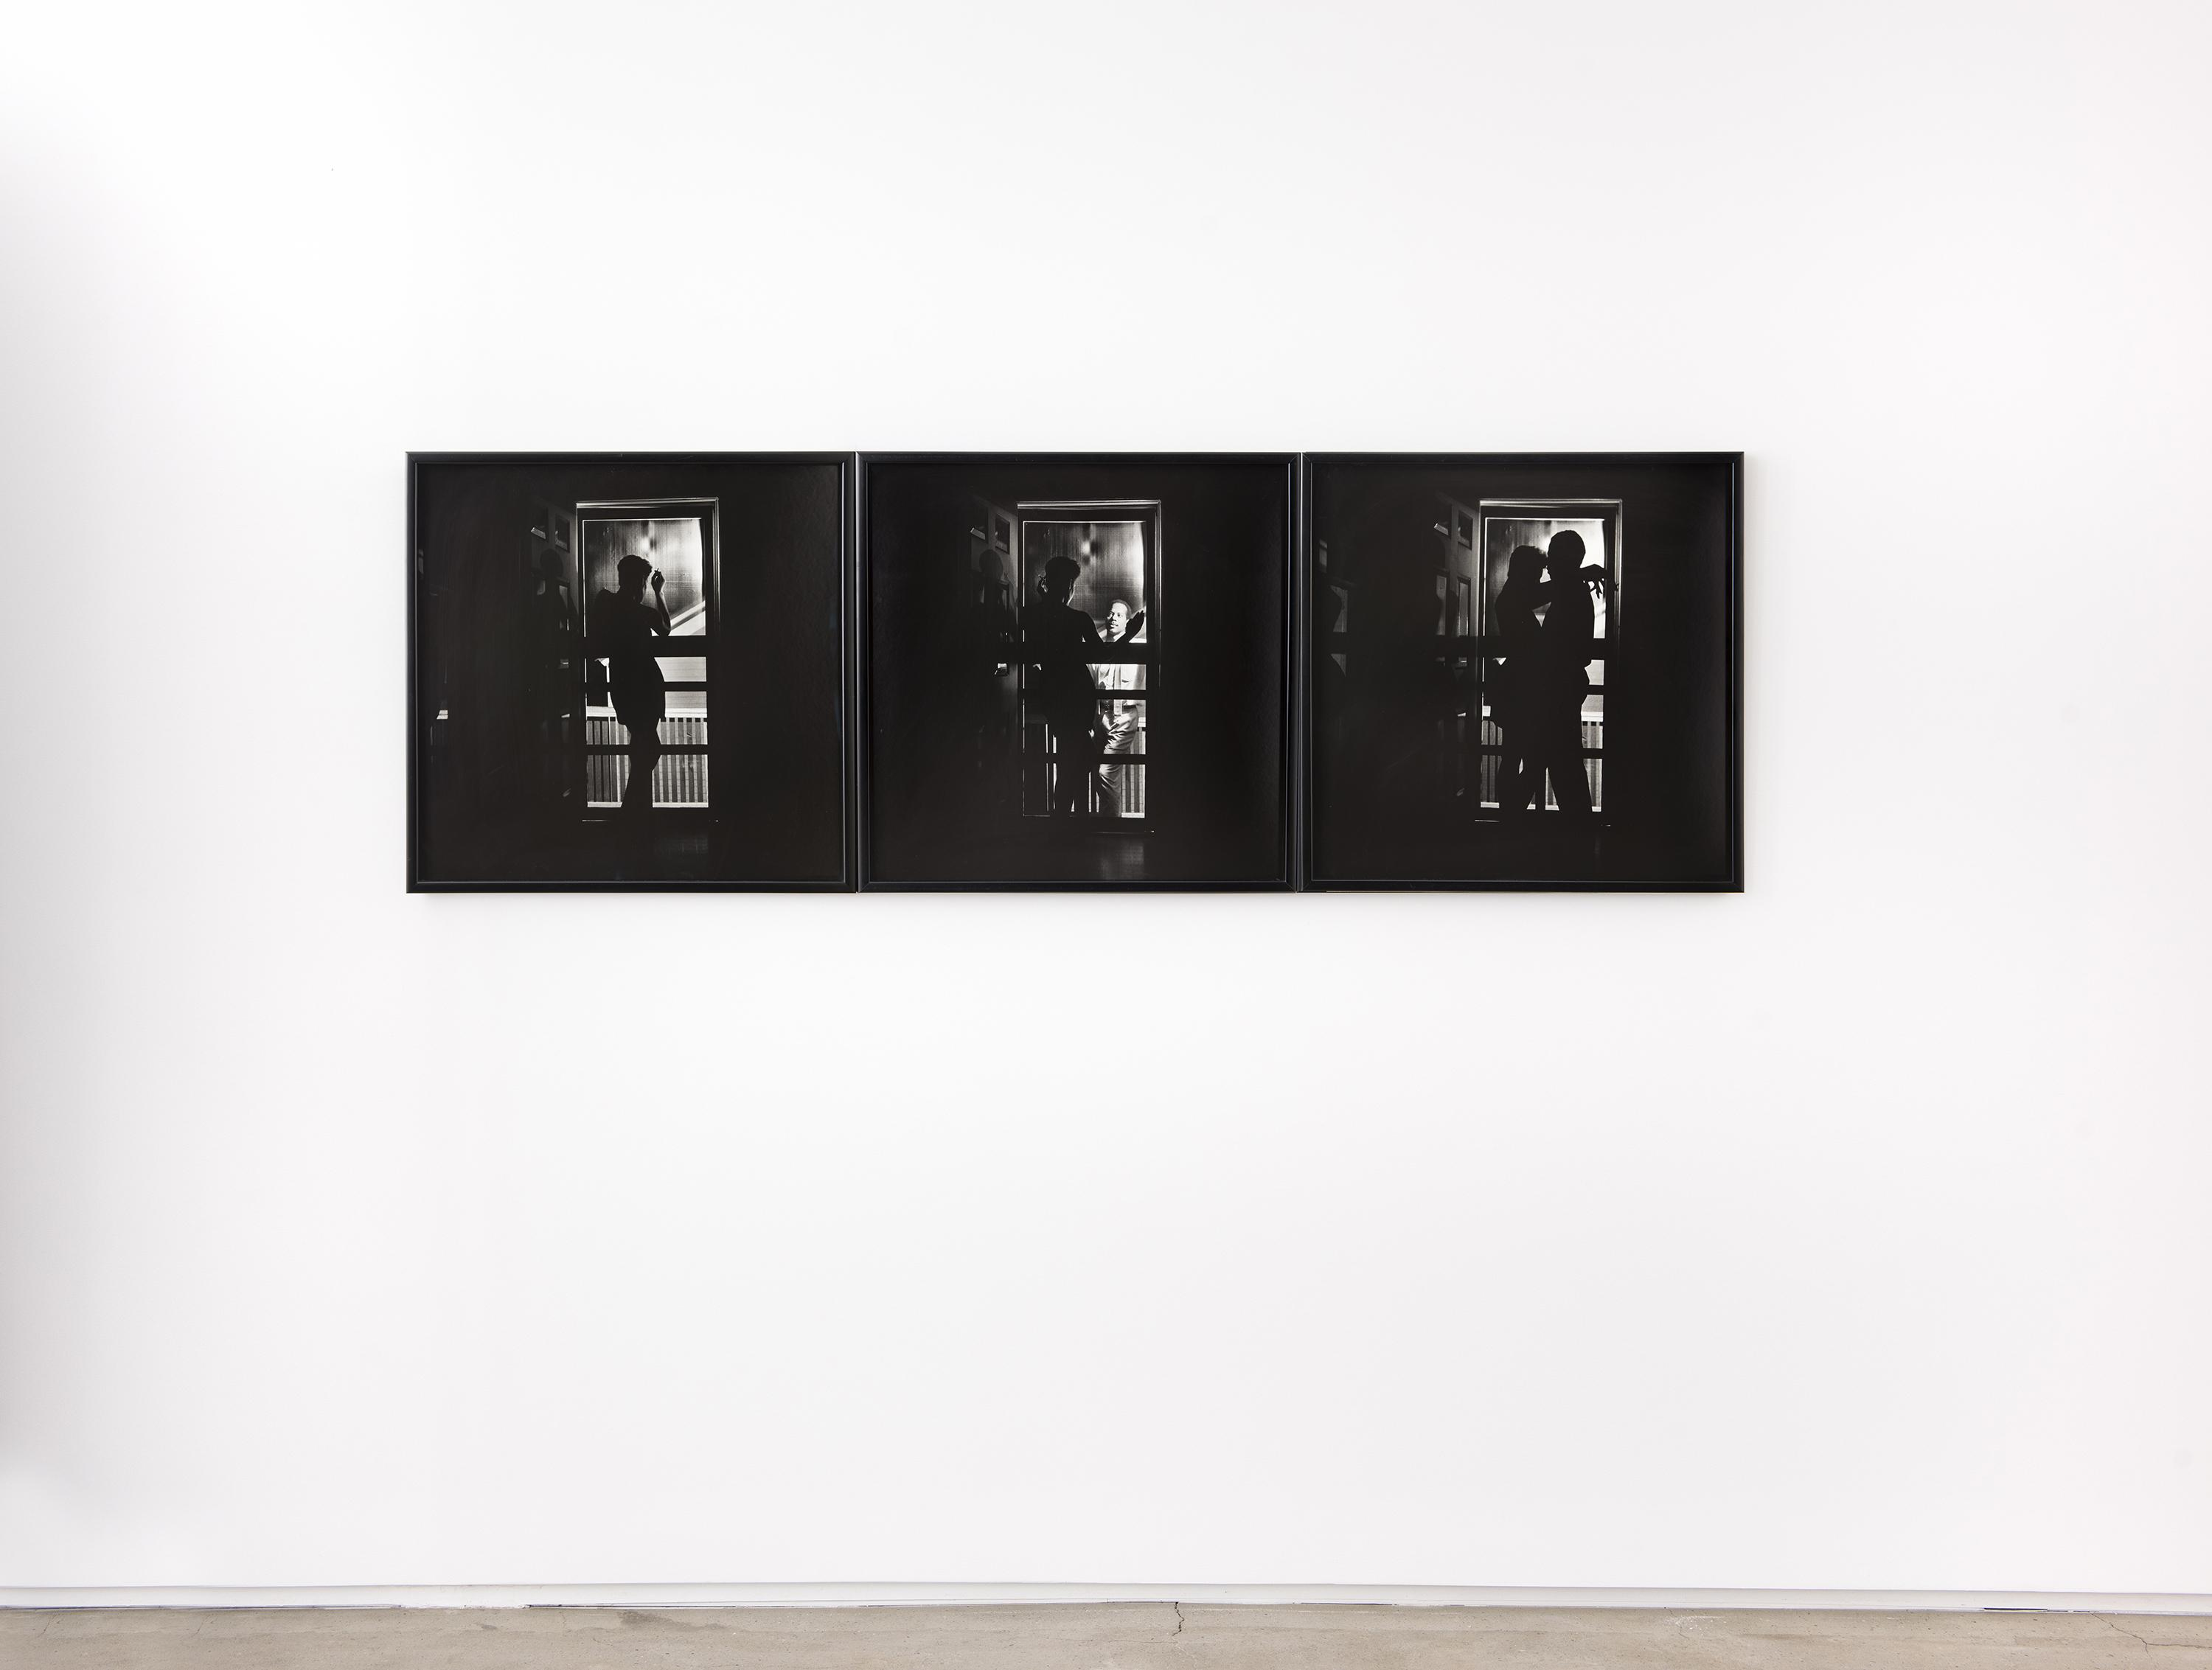 In a black-and-white triptych, the silhouette of a woman is visible holding a cigarette and looking out a doorway. In the second photo, a man appears at the door, and in the third, the silhouetted man and woman embrace.